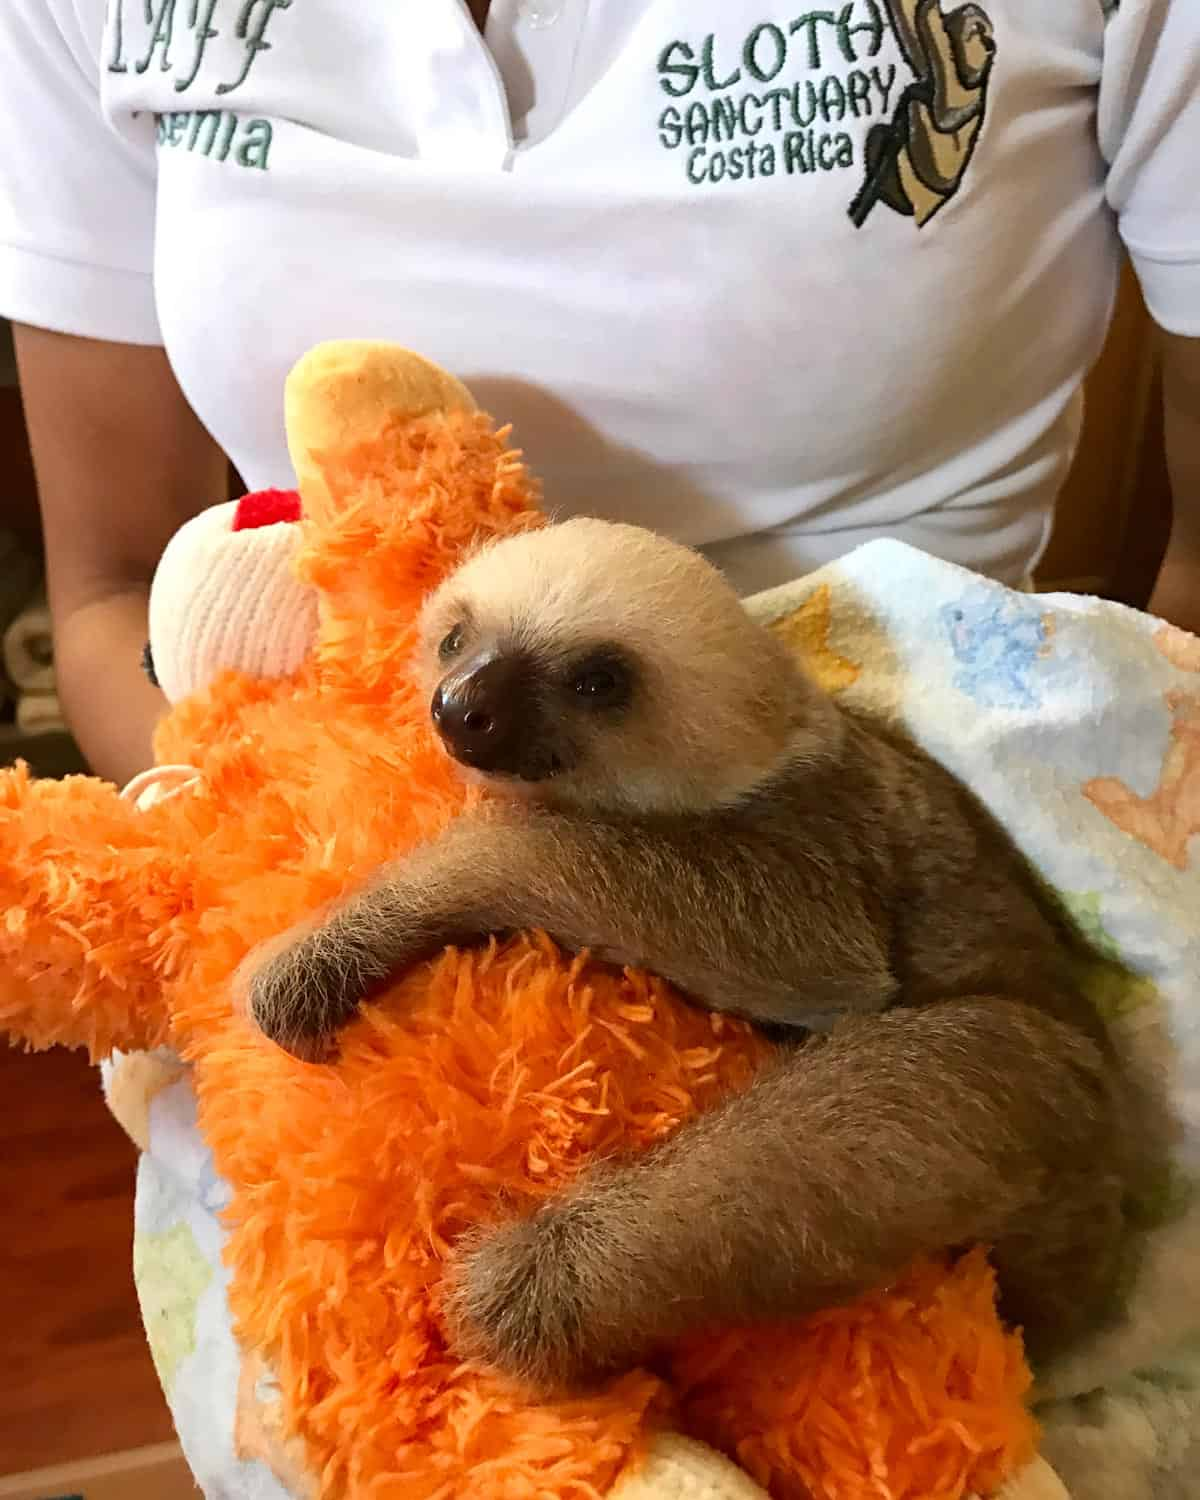 Costa Rica and the Sloth Sanctuary from afarmgirlsdabbles.com